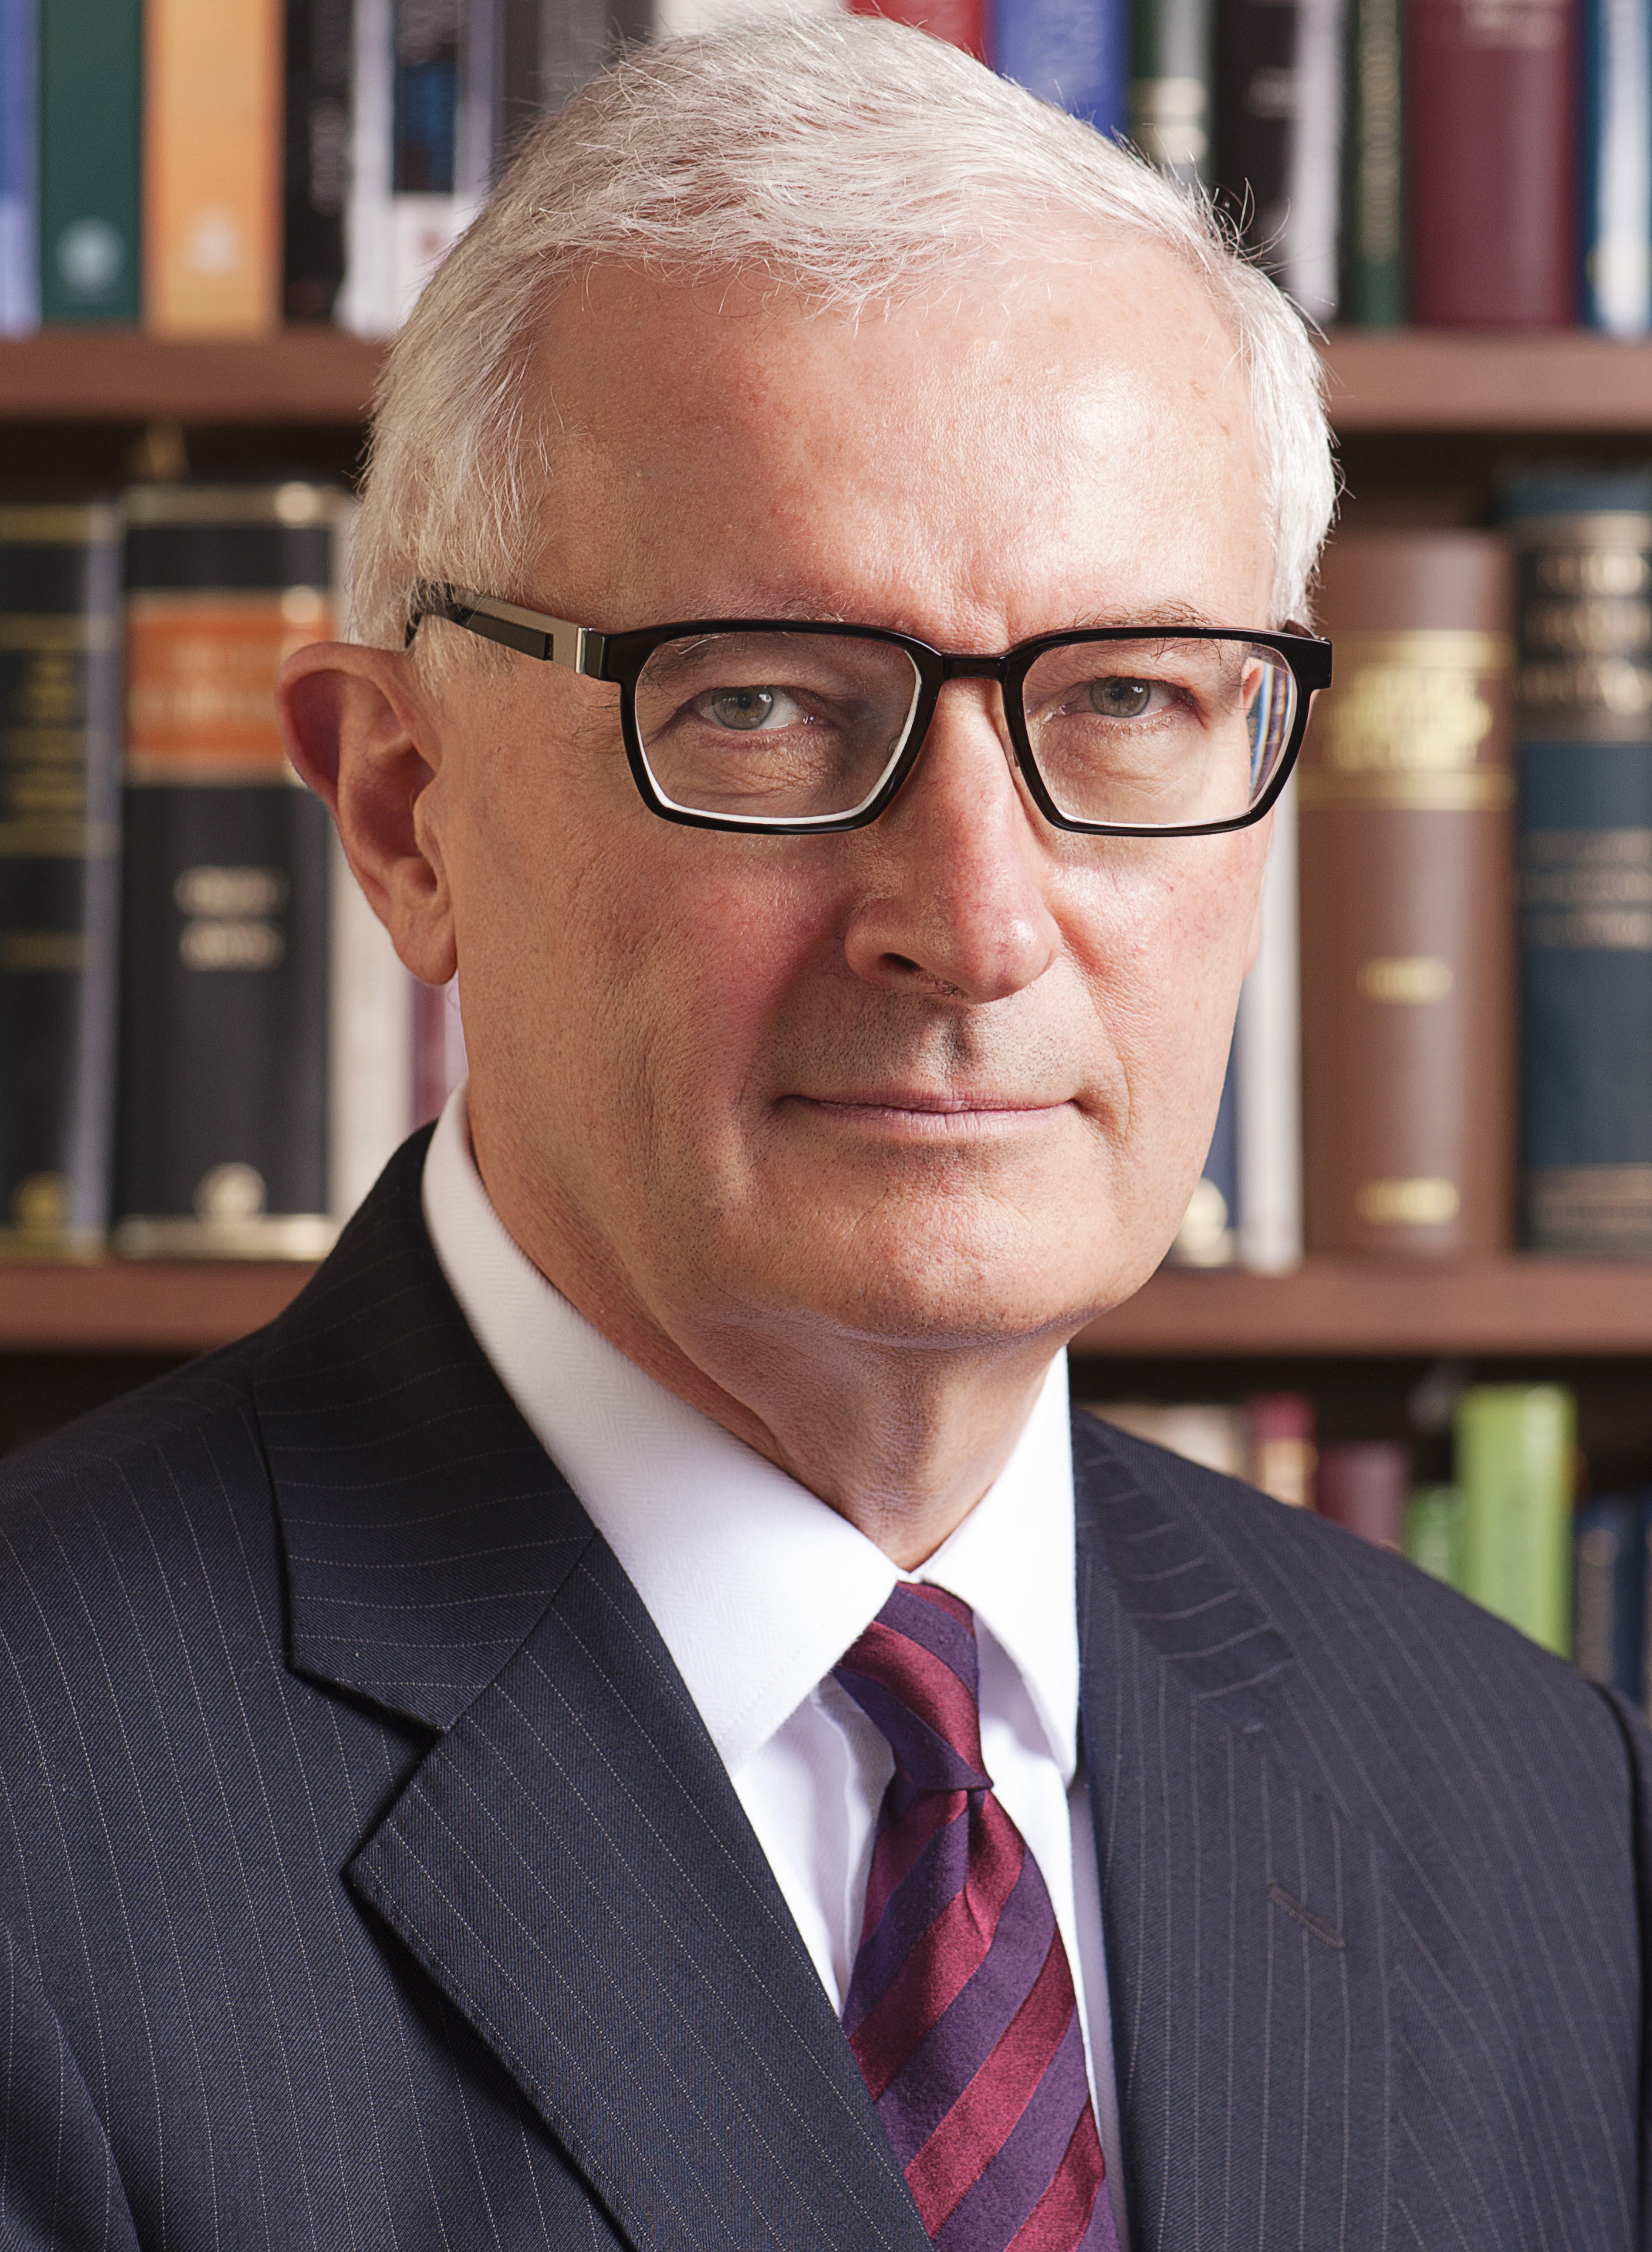 The Honourable Chief Justice James Allsop AO, Federal Court of Australia